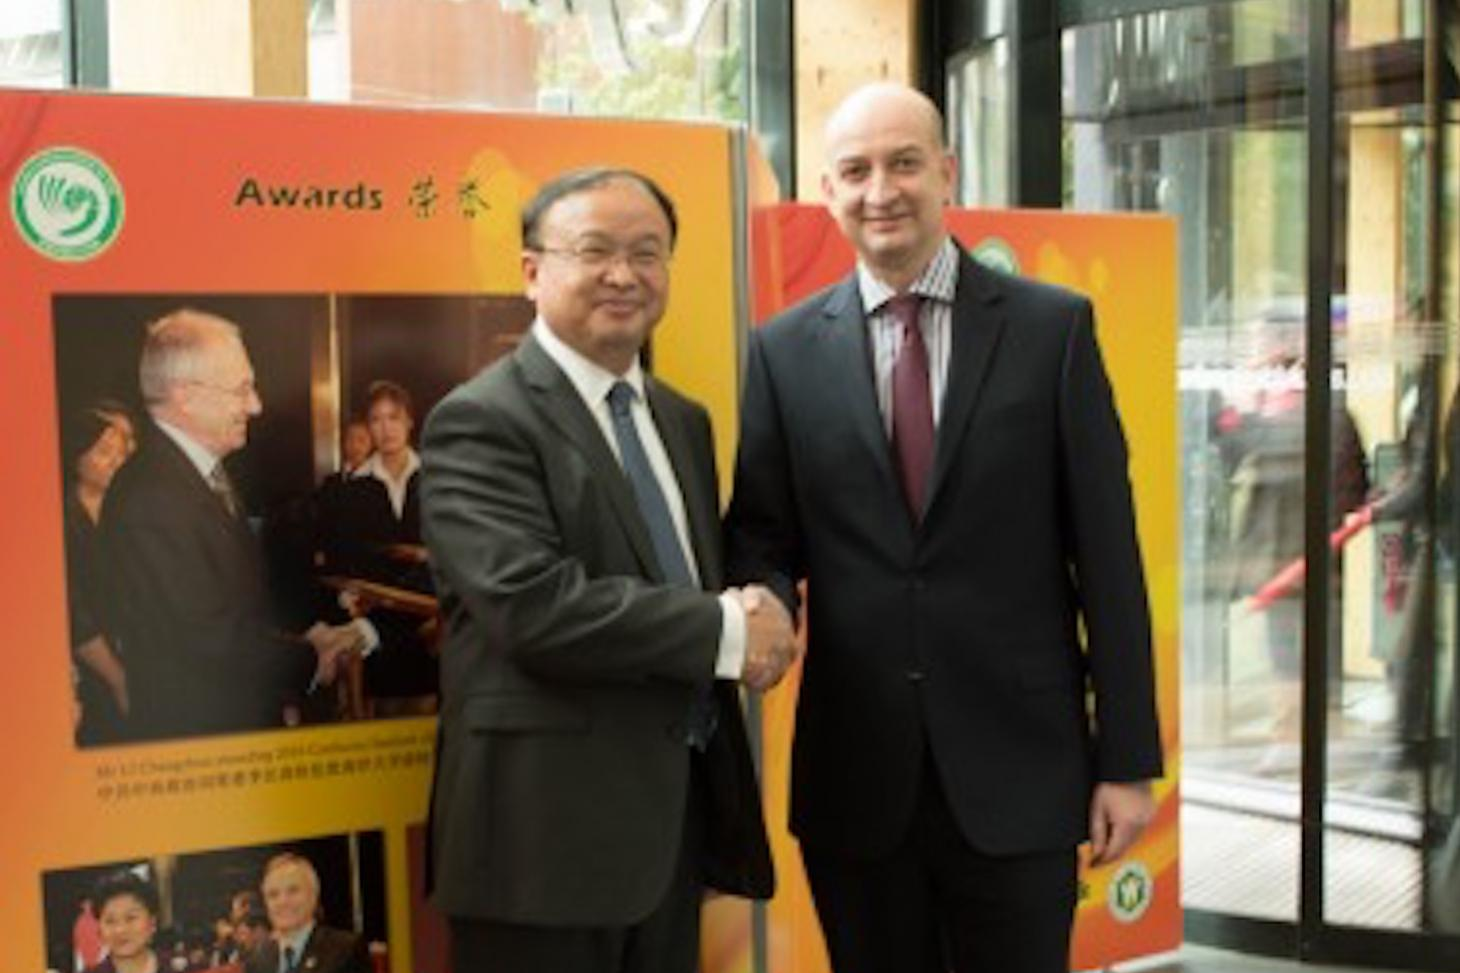 LSBU VC Professor David Phoenix welcomes Minister Counsellor Shen Yang from the Chinese Embassy Education Section to visit LSBU and the Exhibition